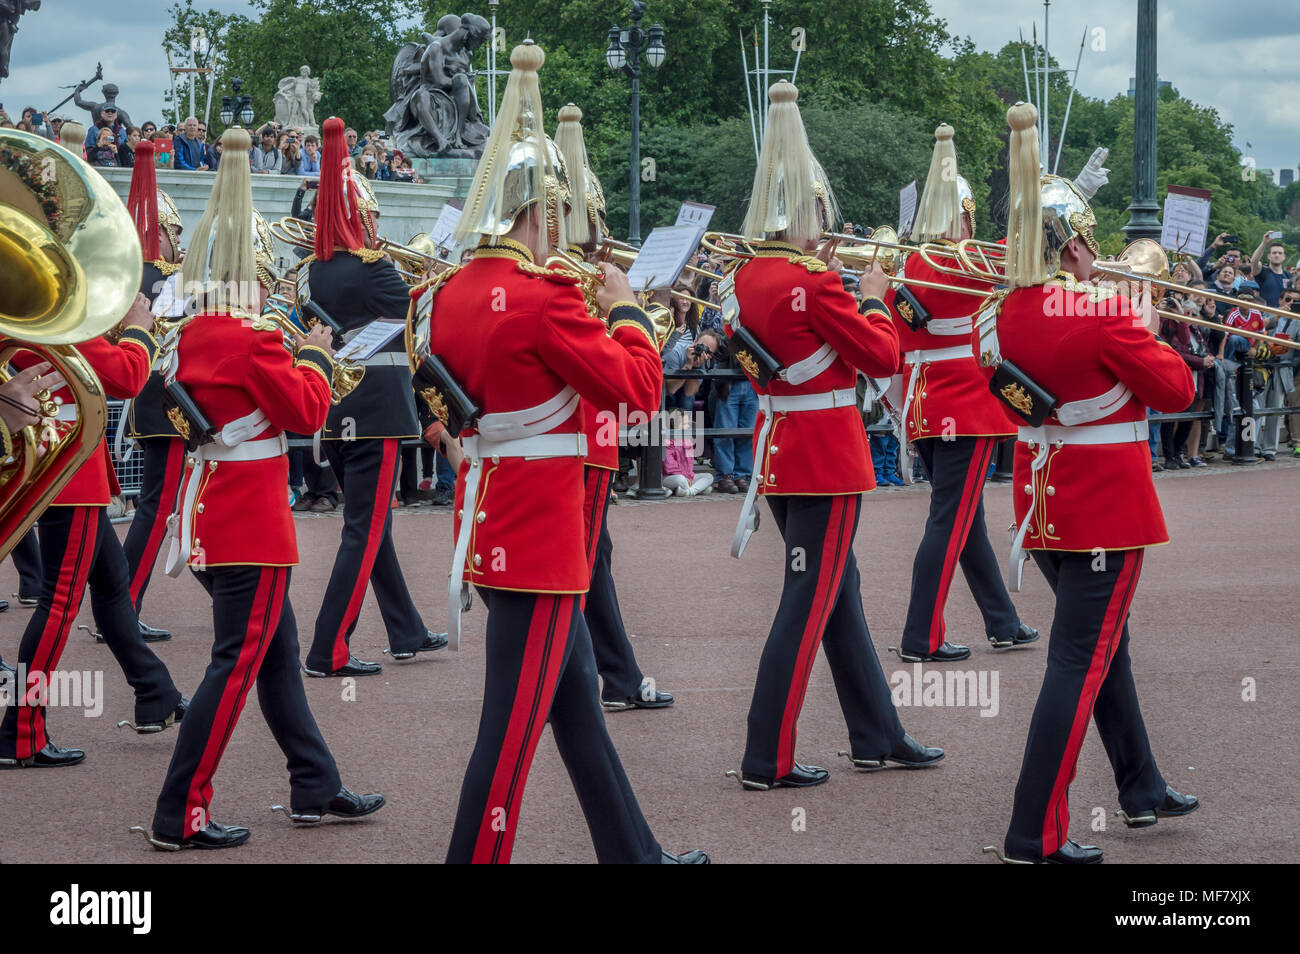 LONDON, ENGLAND - June 26, 2016 - The changing of the guards at Buckingham Palace, London, United Kingdom Stock Photo